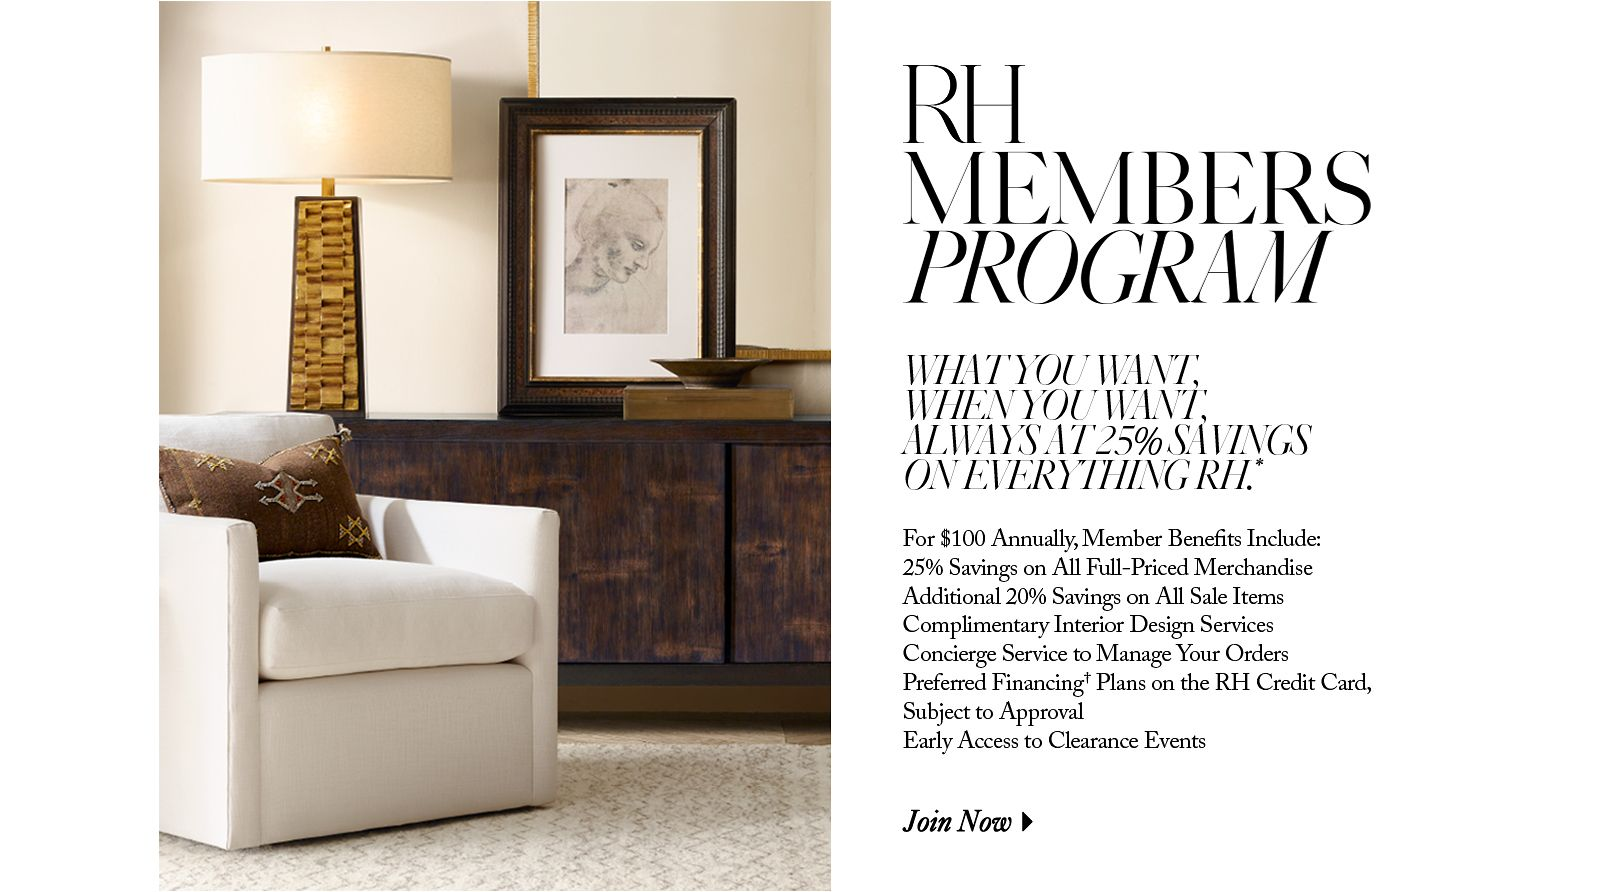 The RH Members Program. What you want, when you want, always at 25% savings on everything RH. For $100 annually, member benefits include: 25% savings on full-priced merchandise; additional 20% savings on all sale; click to learn more.